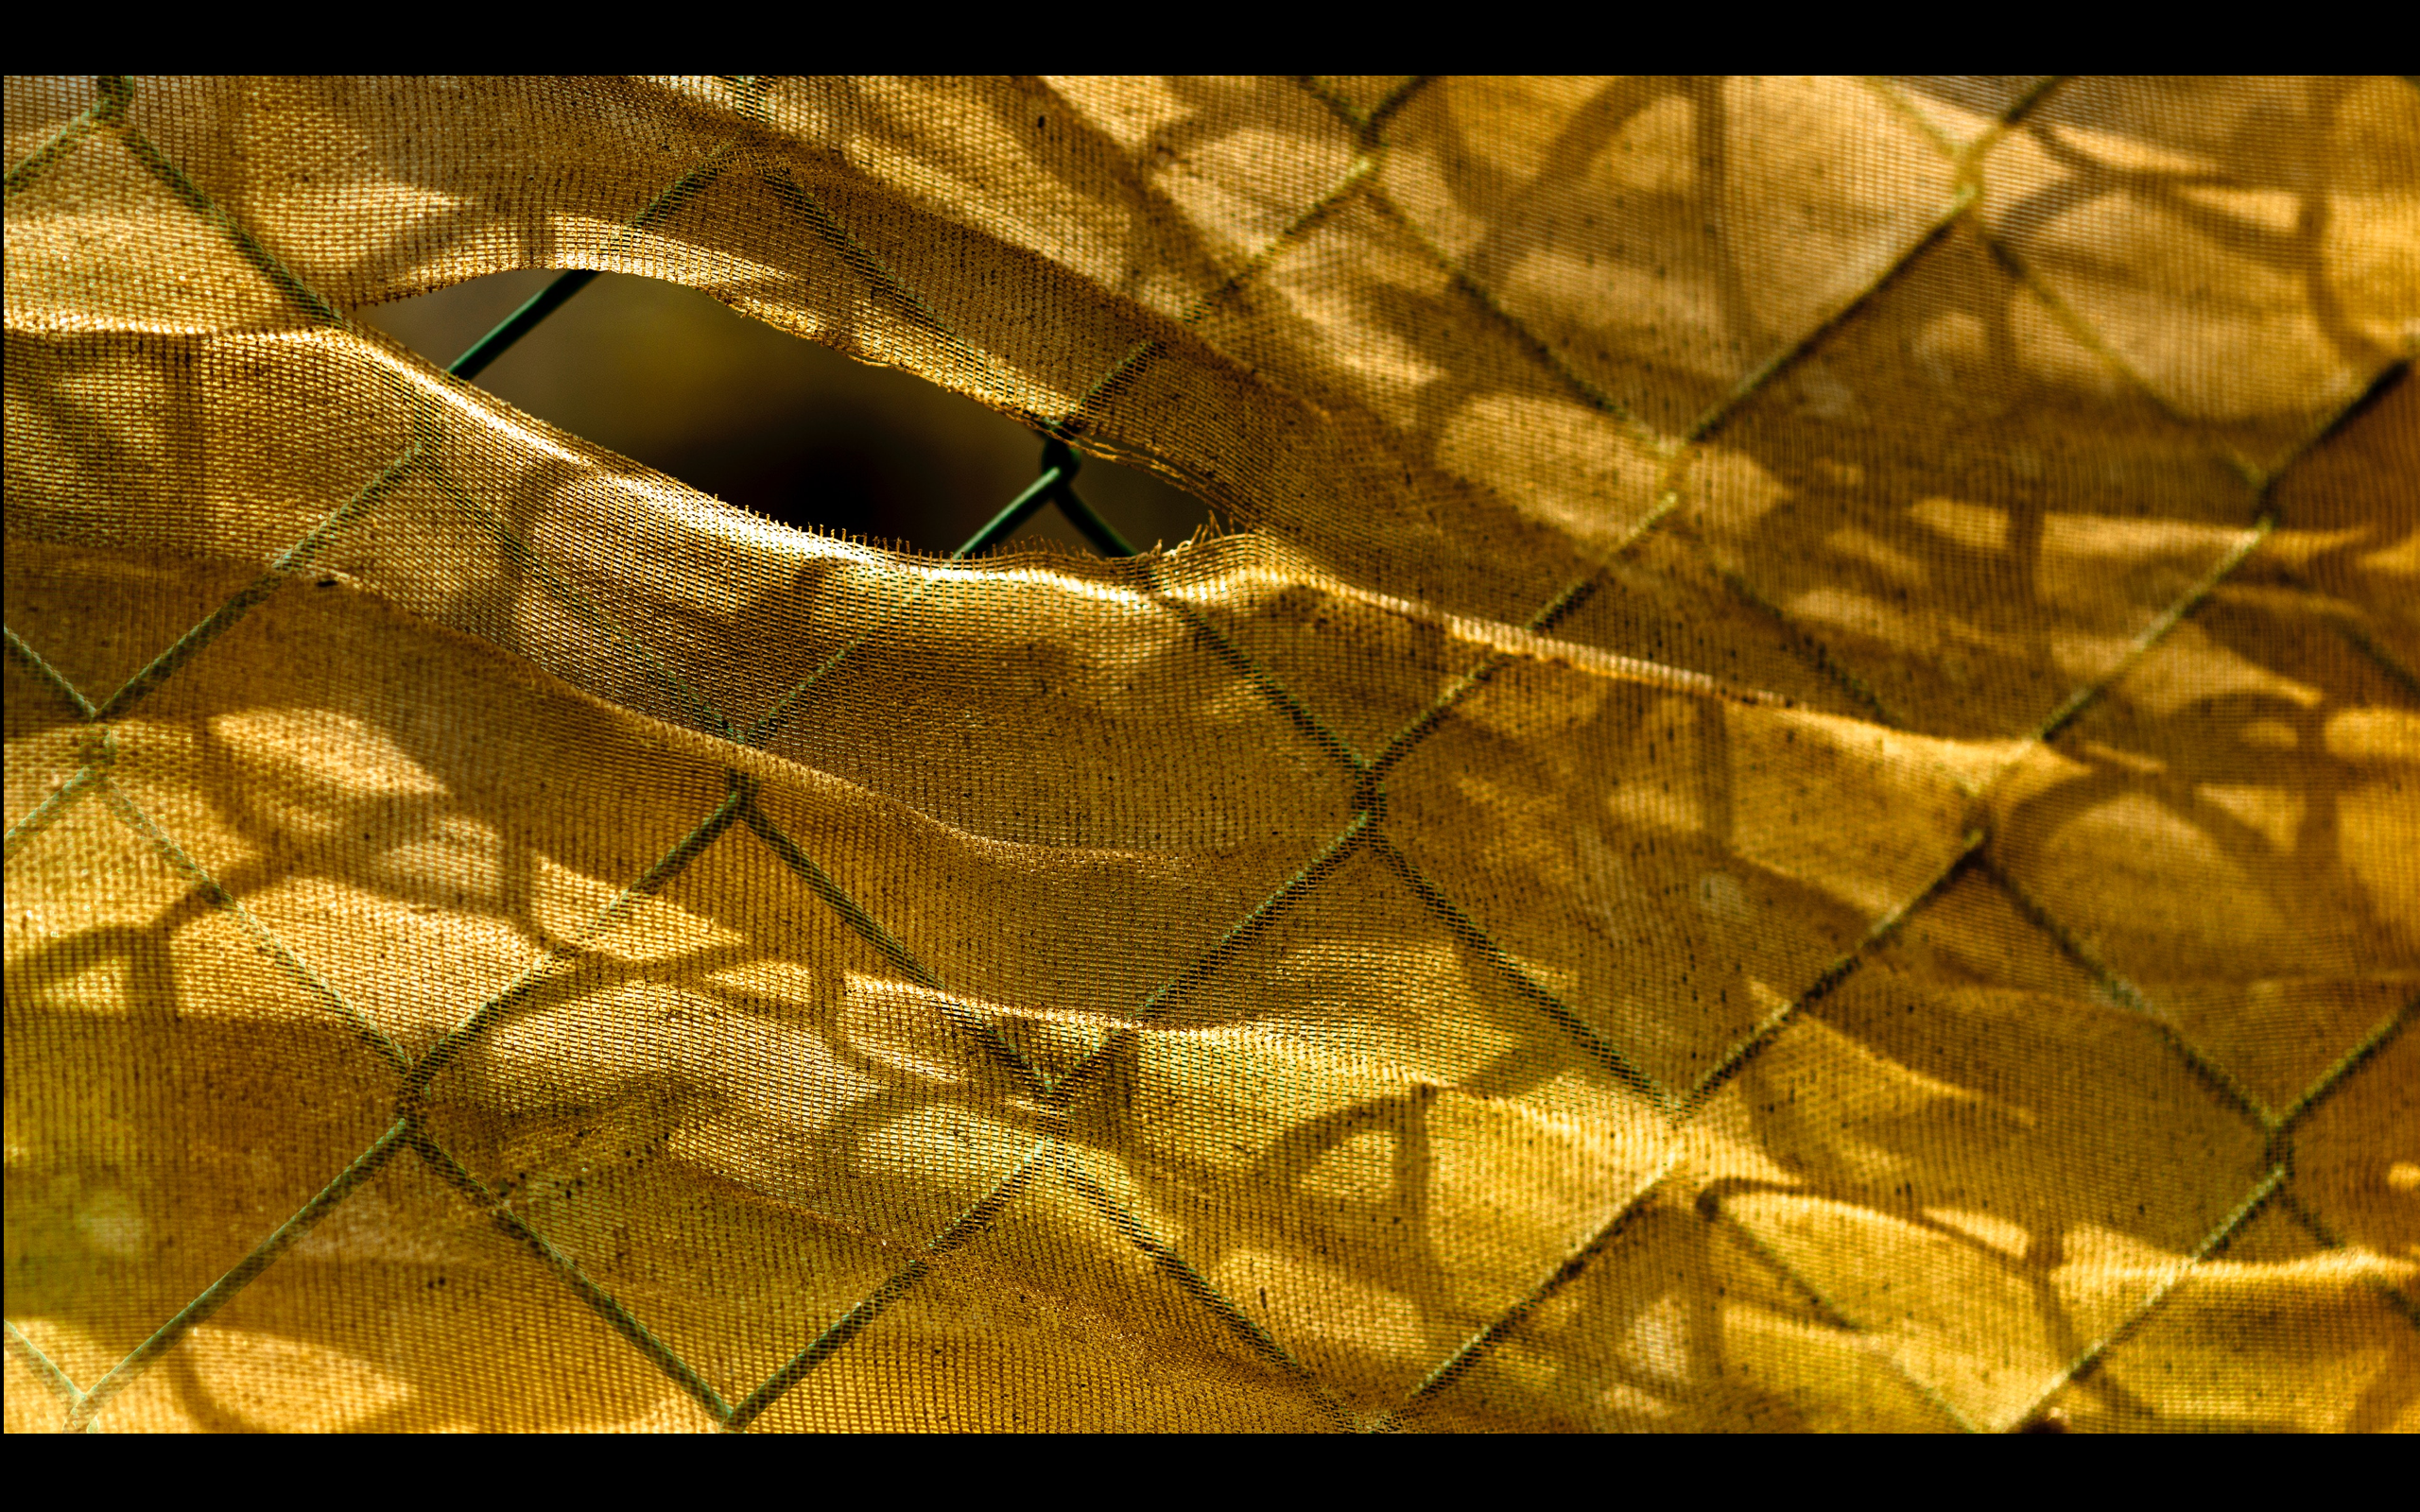 photo of a ripped textile